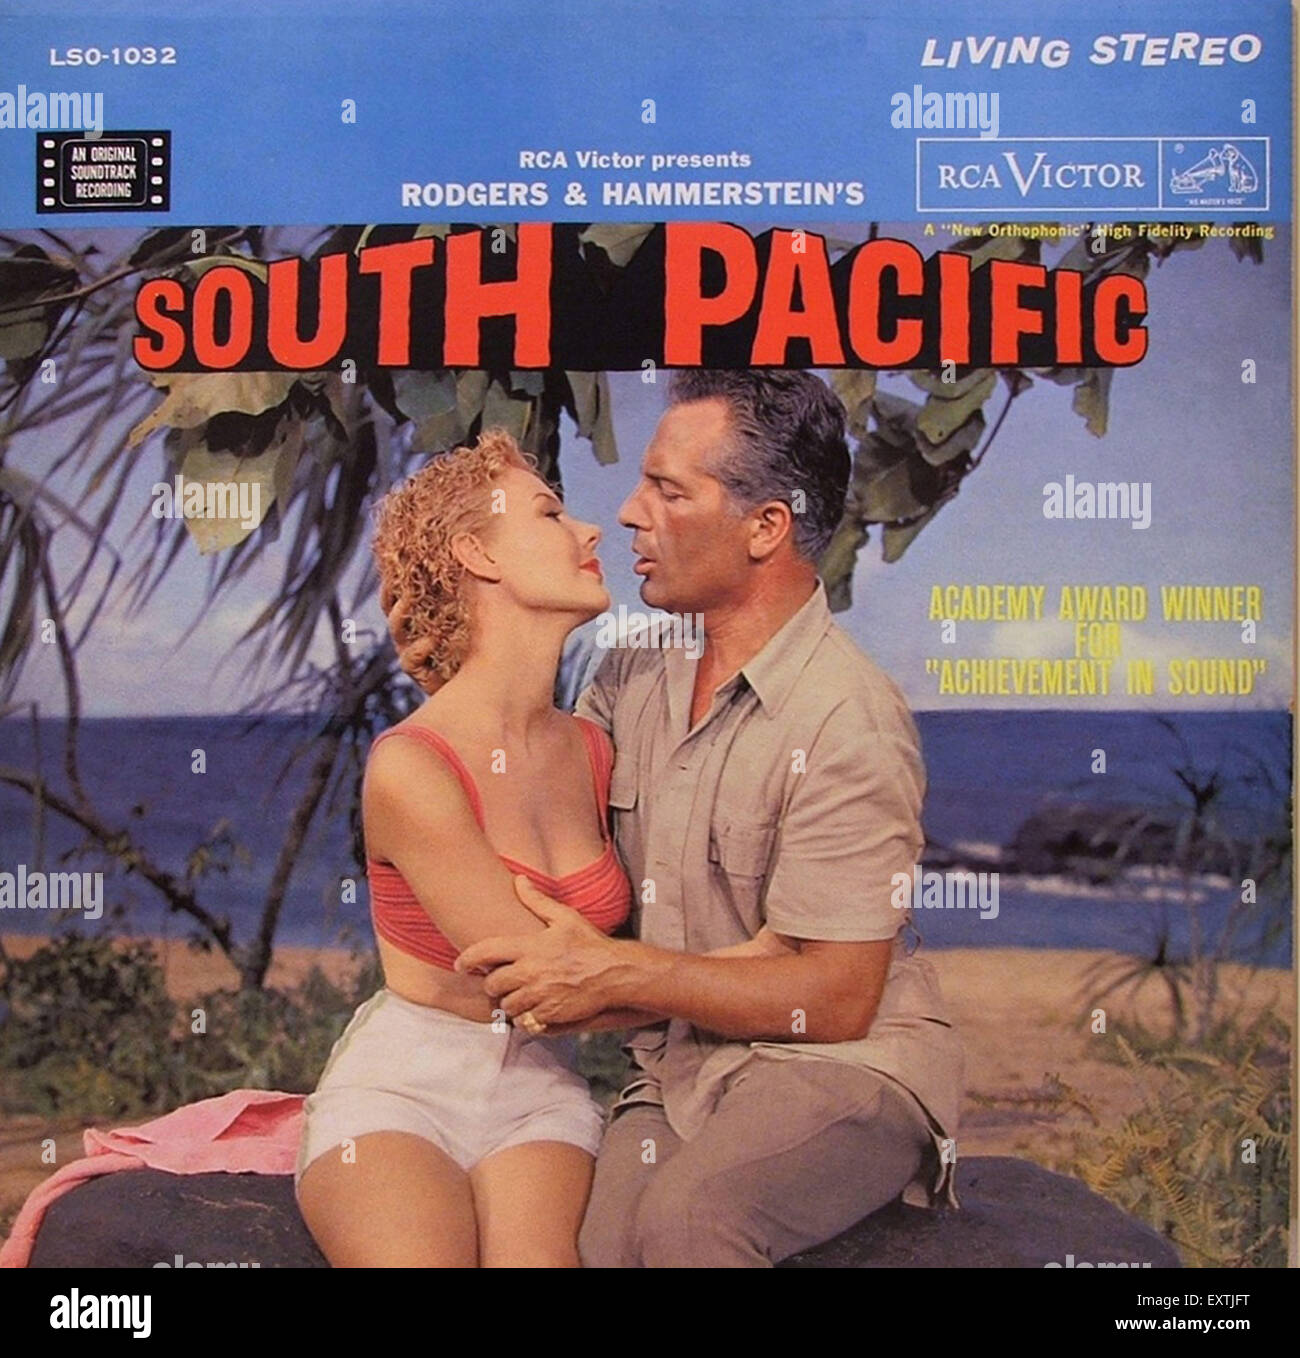 1950s USA South Pacific Album Cover - Stock Image